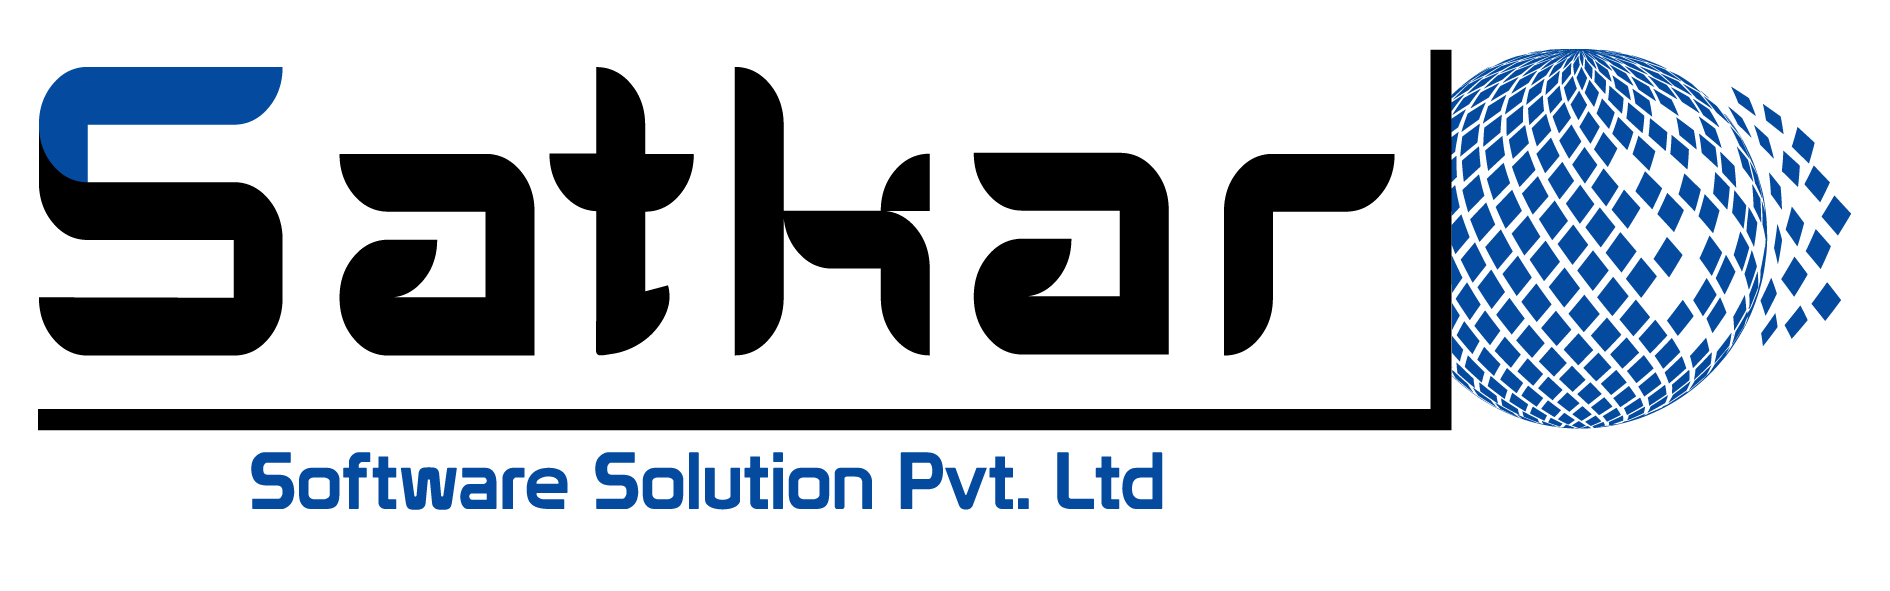 Satkar Software Solution logo